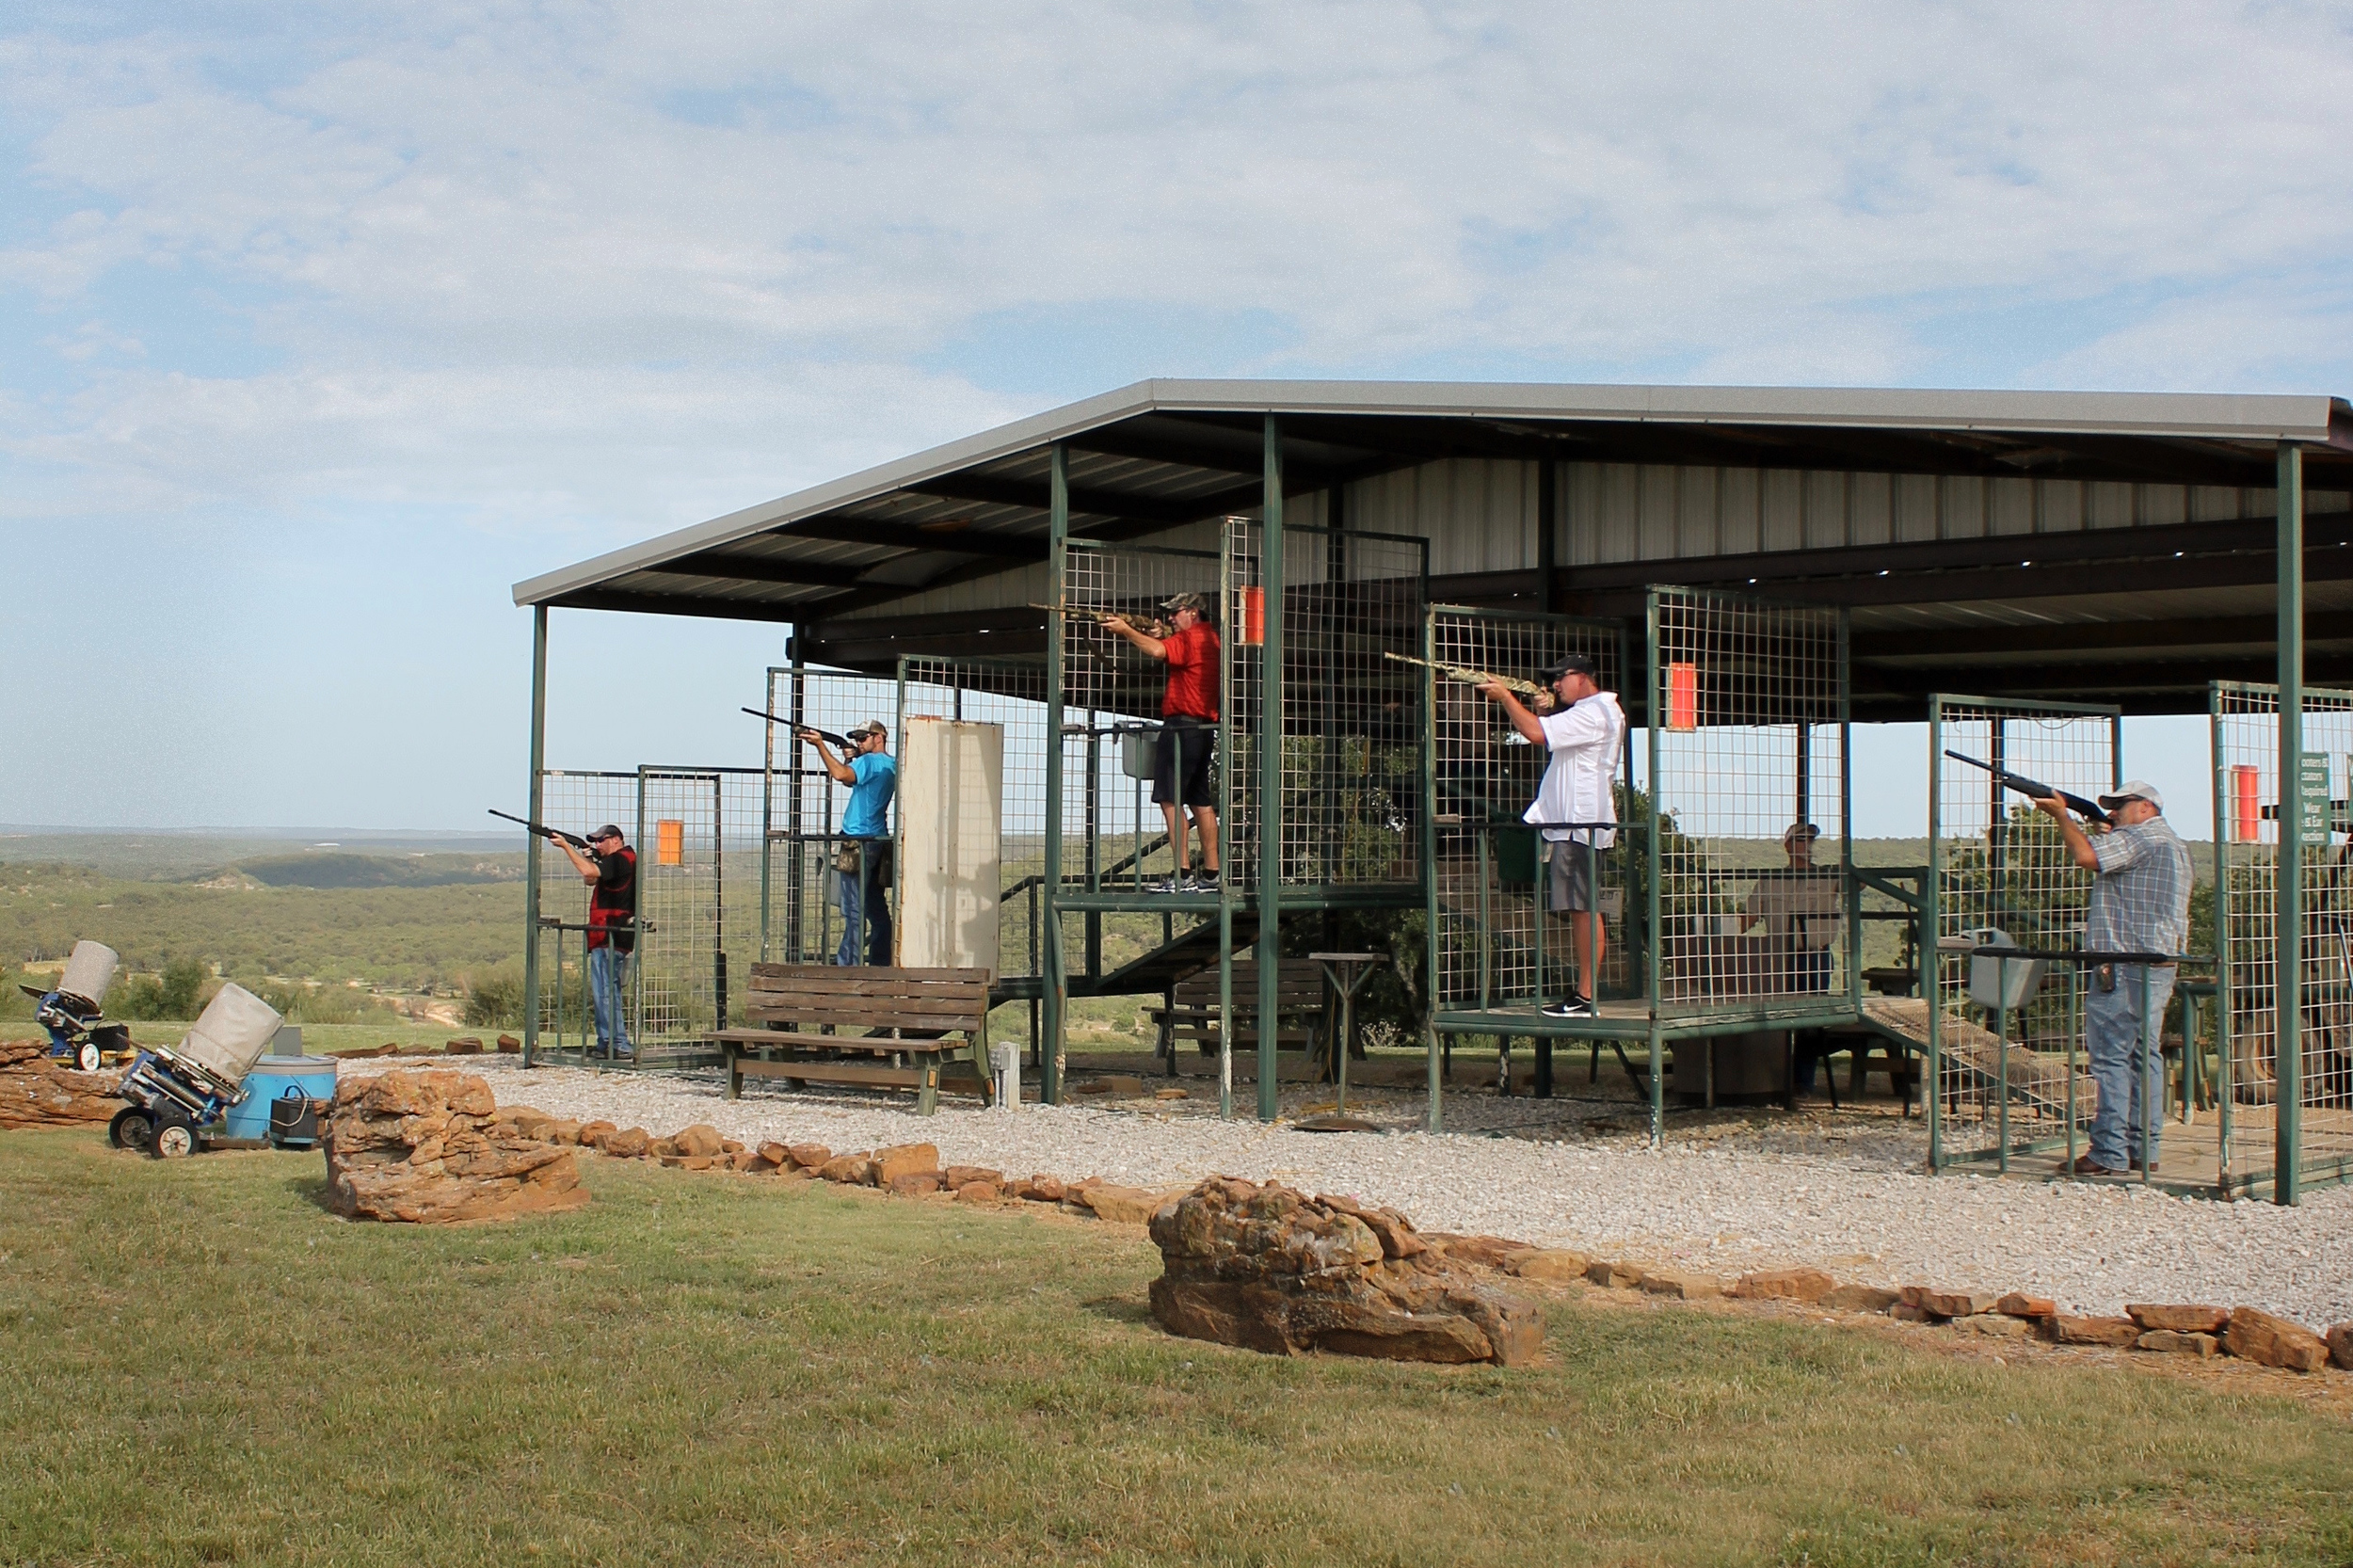 5-Stand-Sporting-Clays.jpg